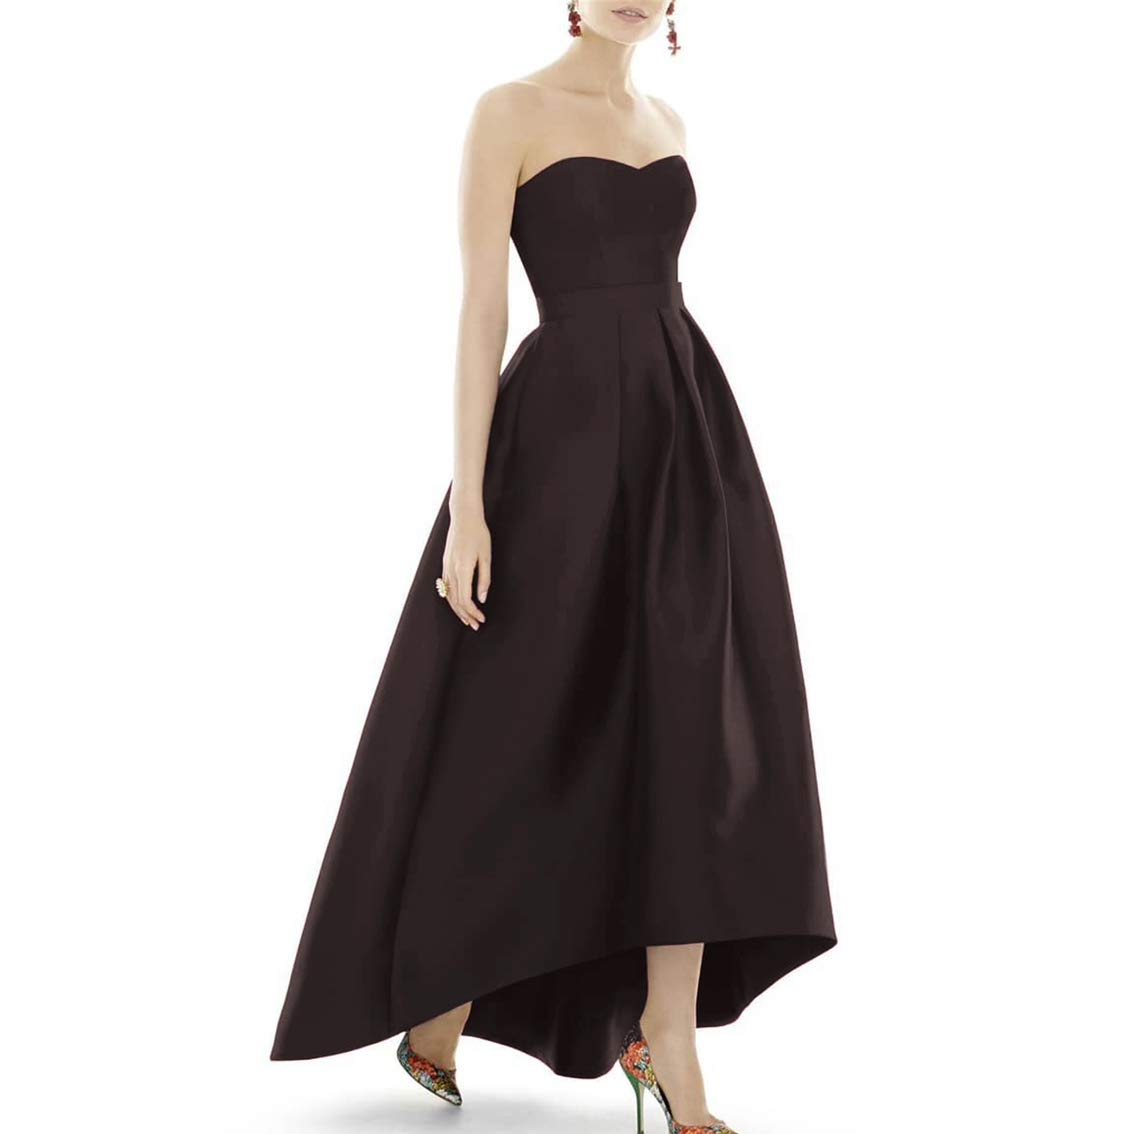 Chocolate XSWPL Women's Strapless High Low Bridesmaid Dresses Sweetheart Satin Prom Gowns ALine